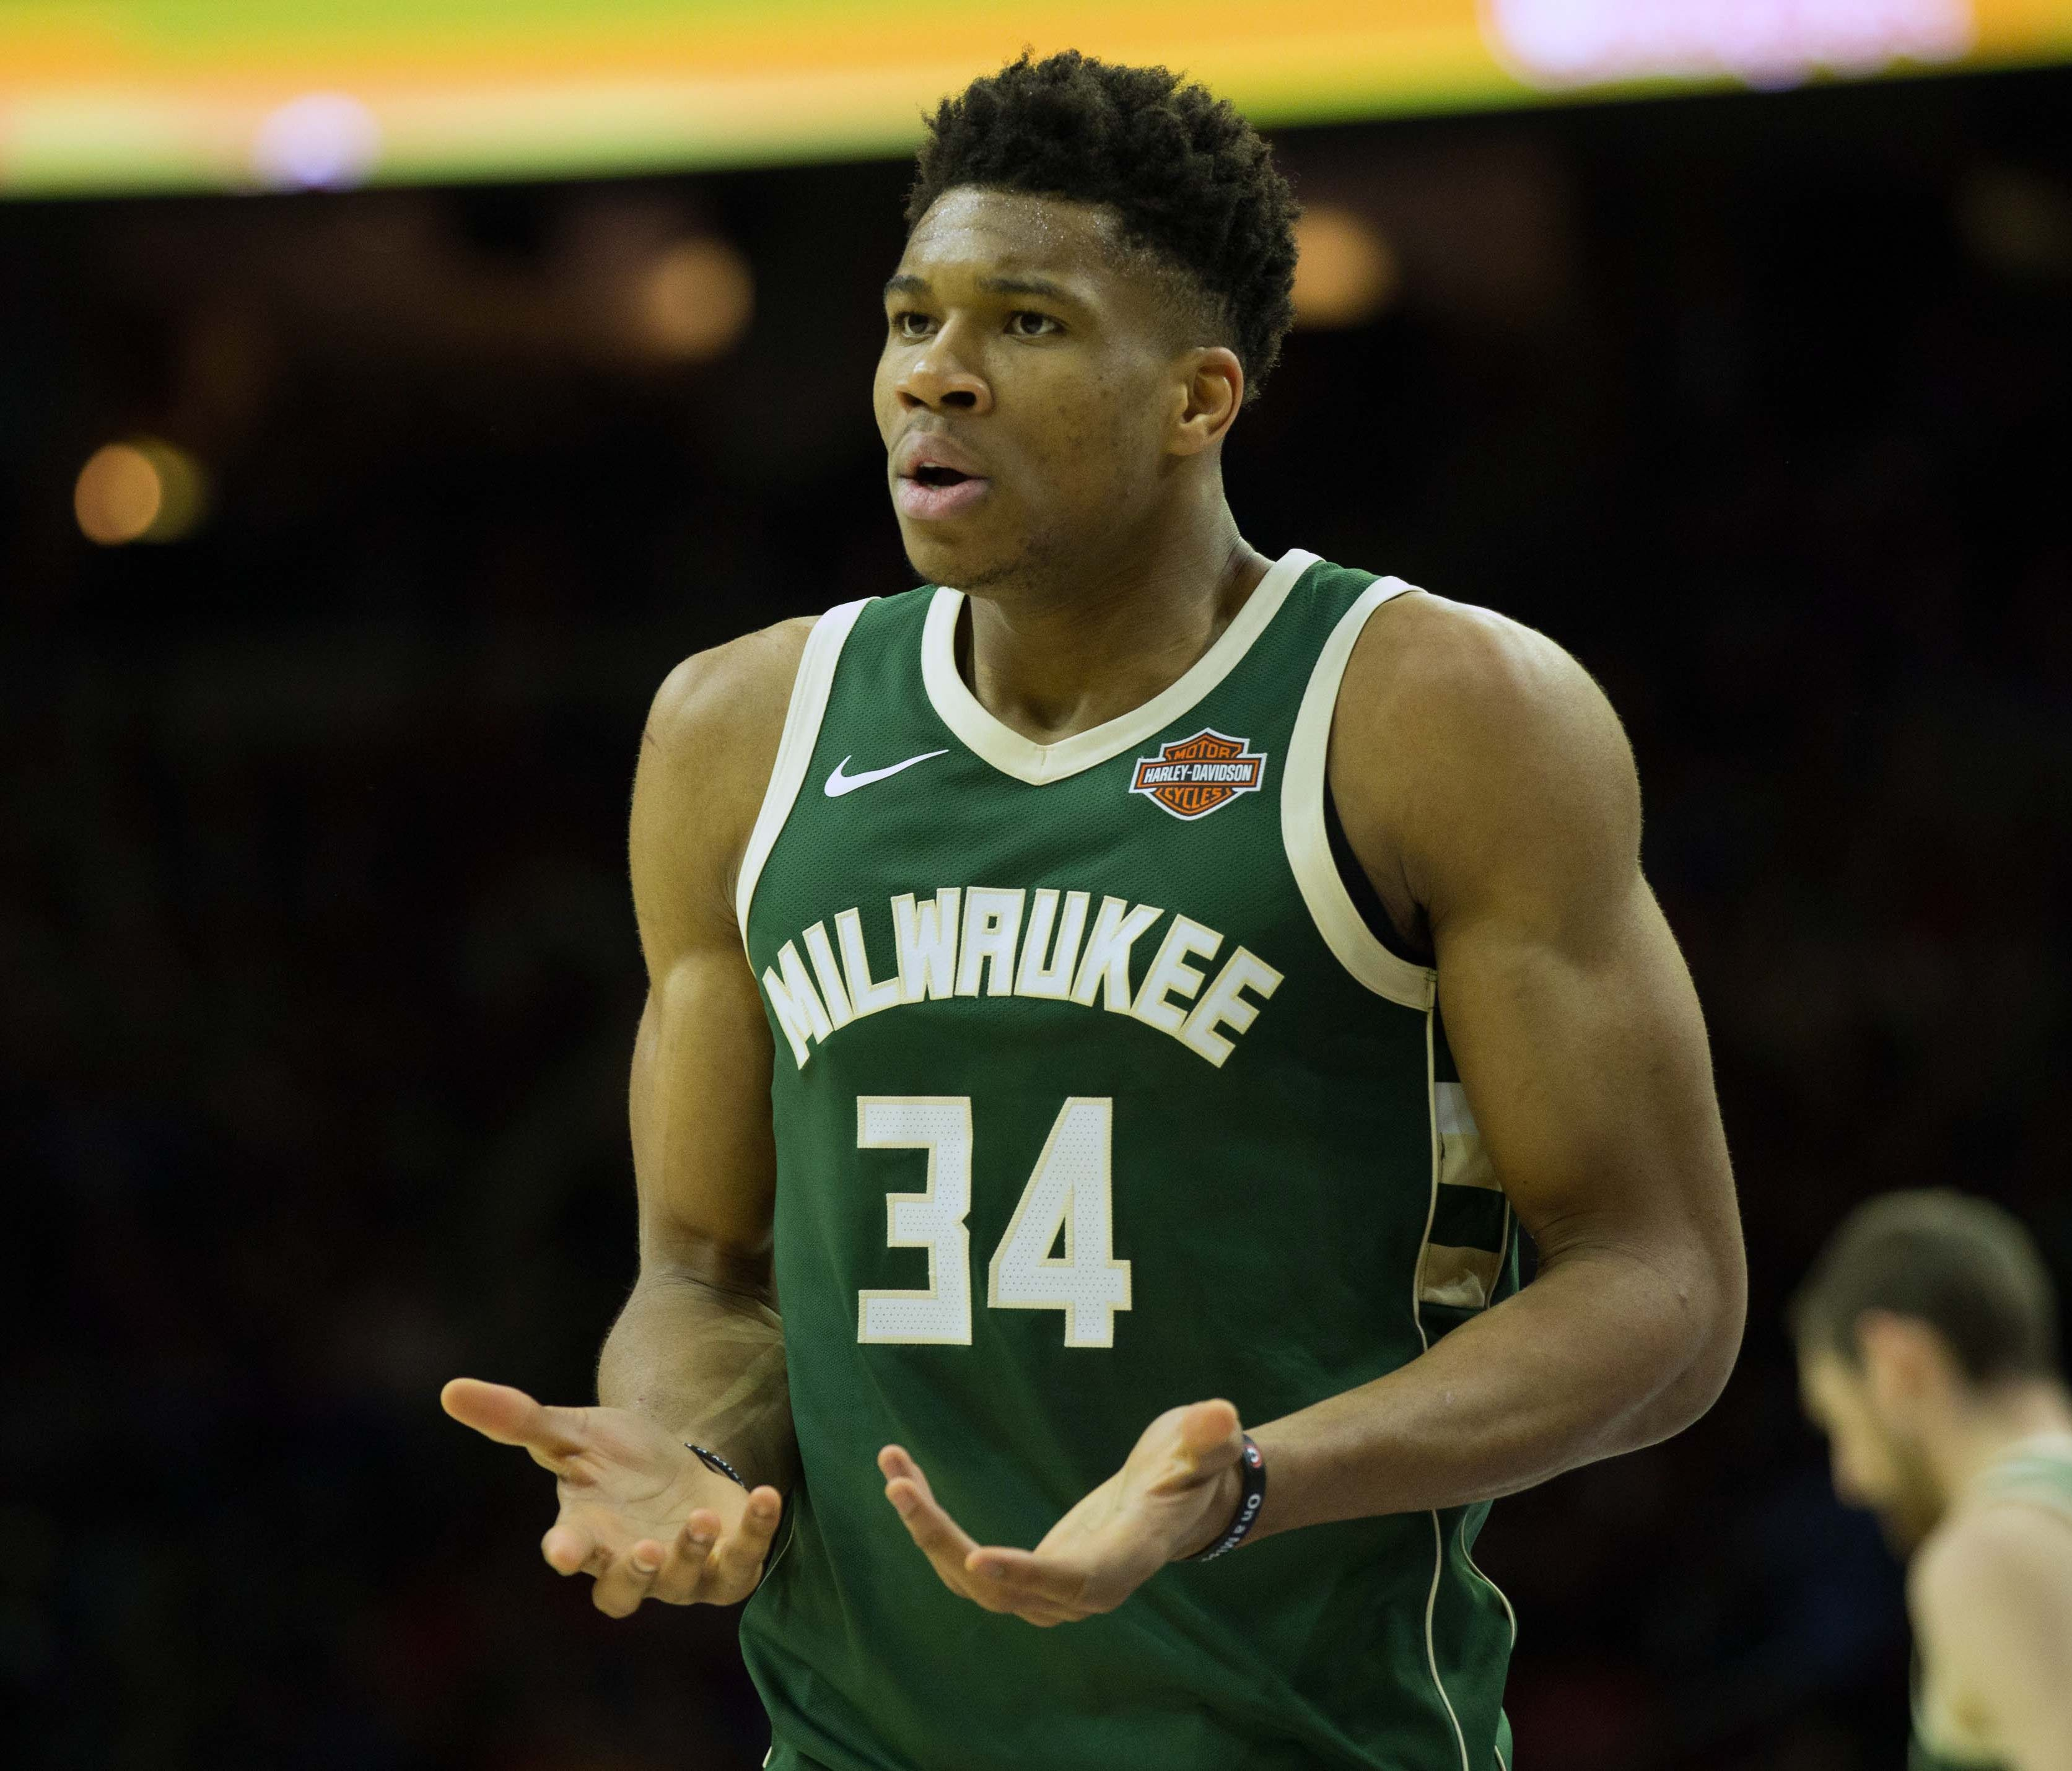 Milwaukee Bucks forward Giannis Antetokounmpo reacts after a turnover against the Philadelphia 76ers during the second quarter at Wells Fargo Center.